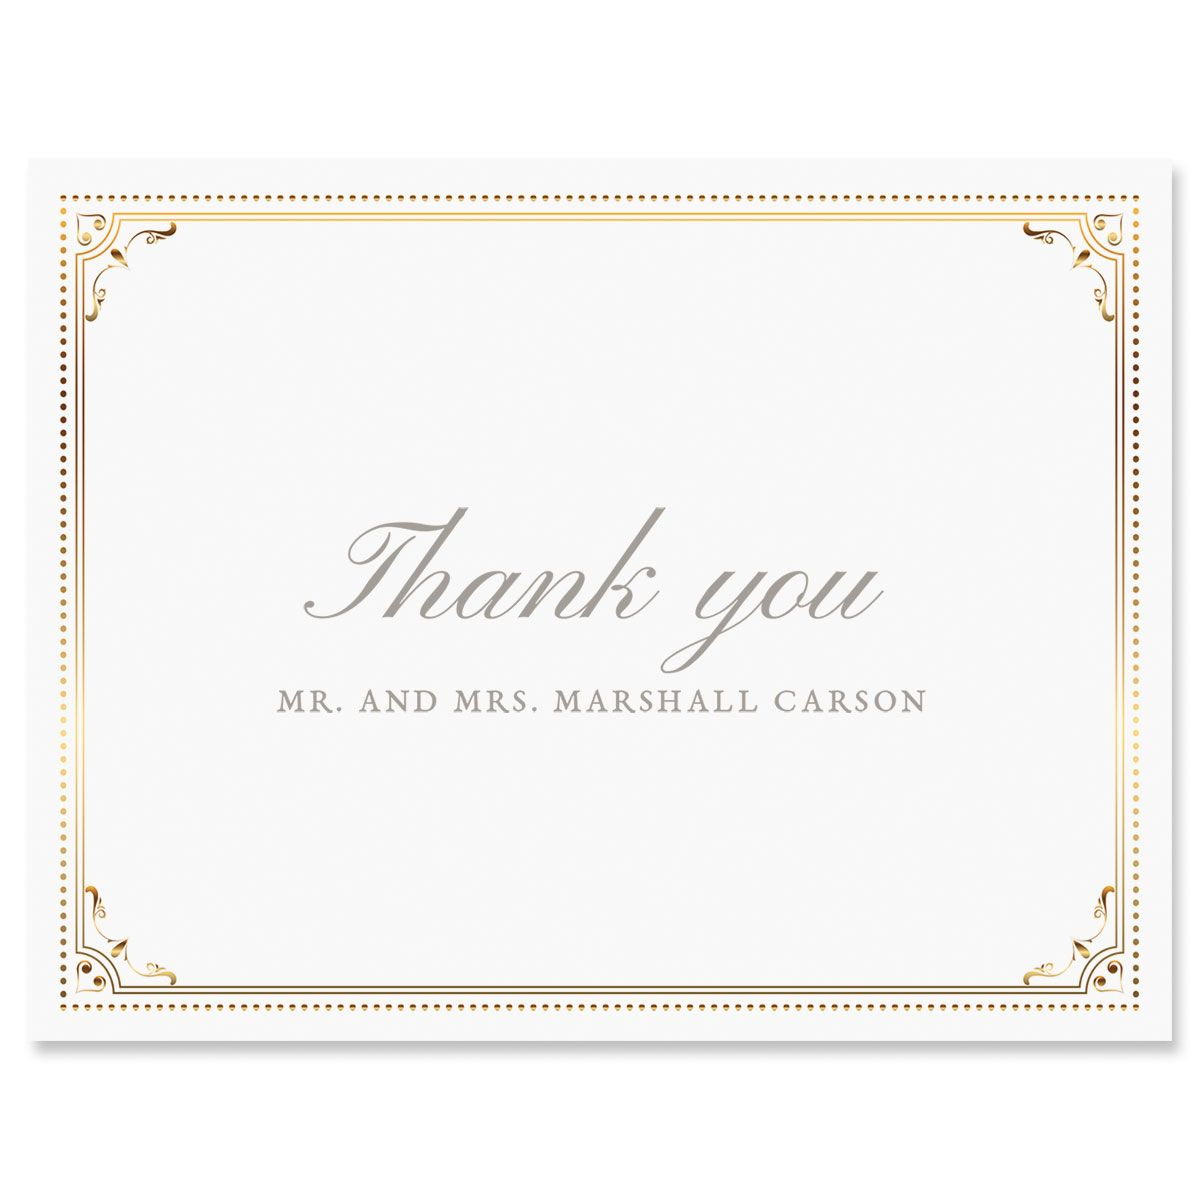 Personalized Gold Frame Thank You Cards